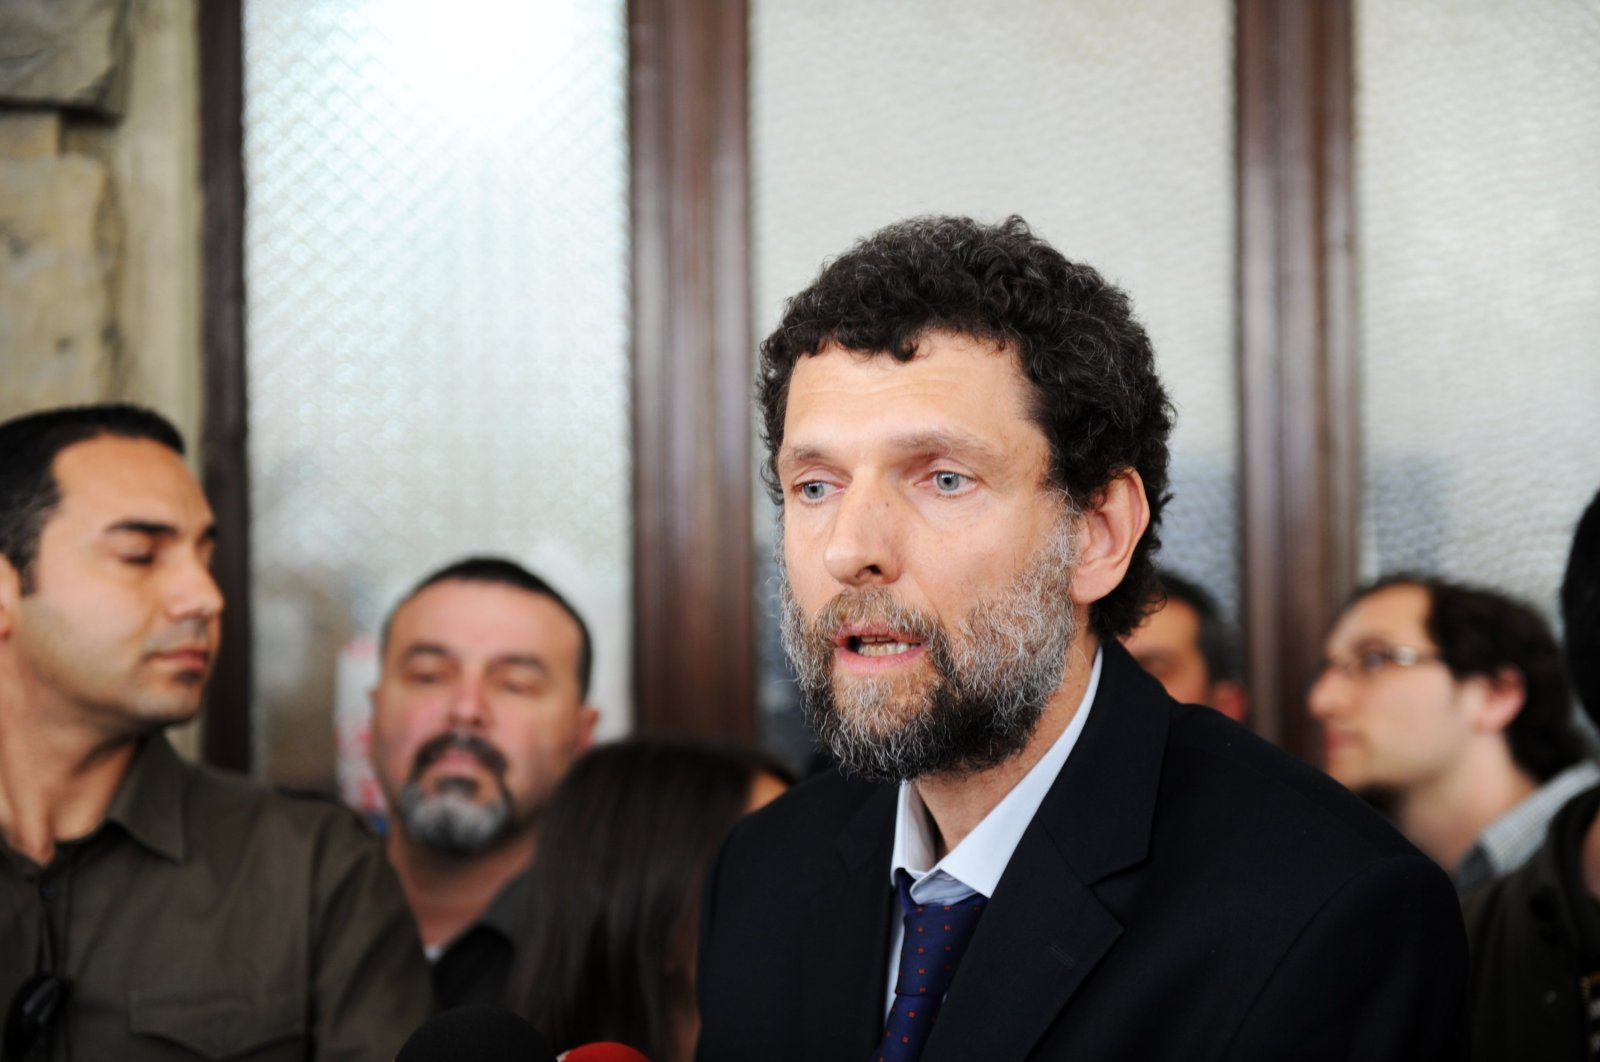 Osman Kavala is accused of financing and coordinating the Gezi protests in 2013. (iStock Photo)